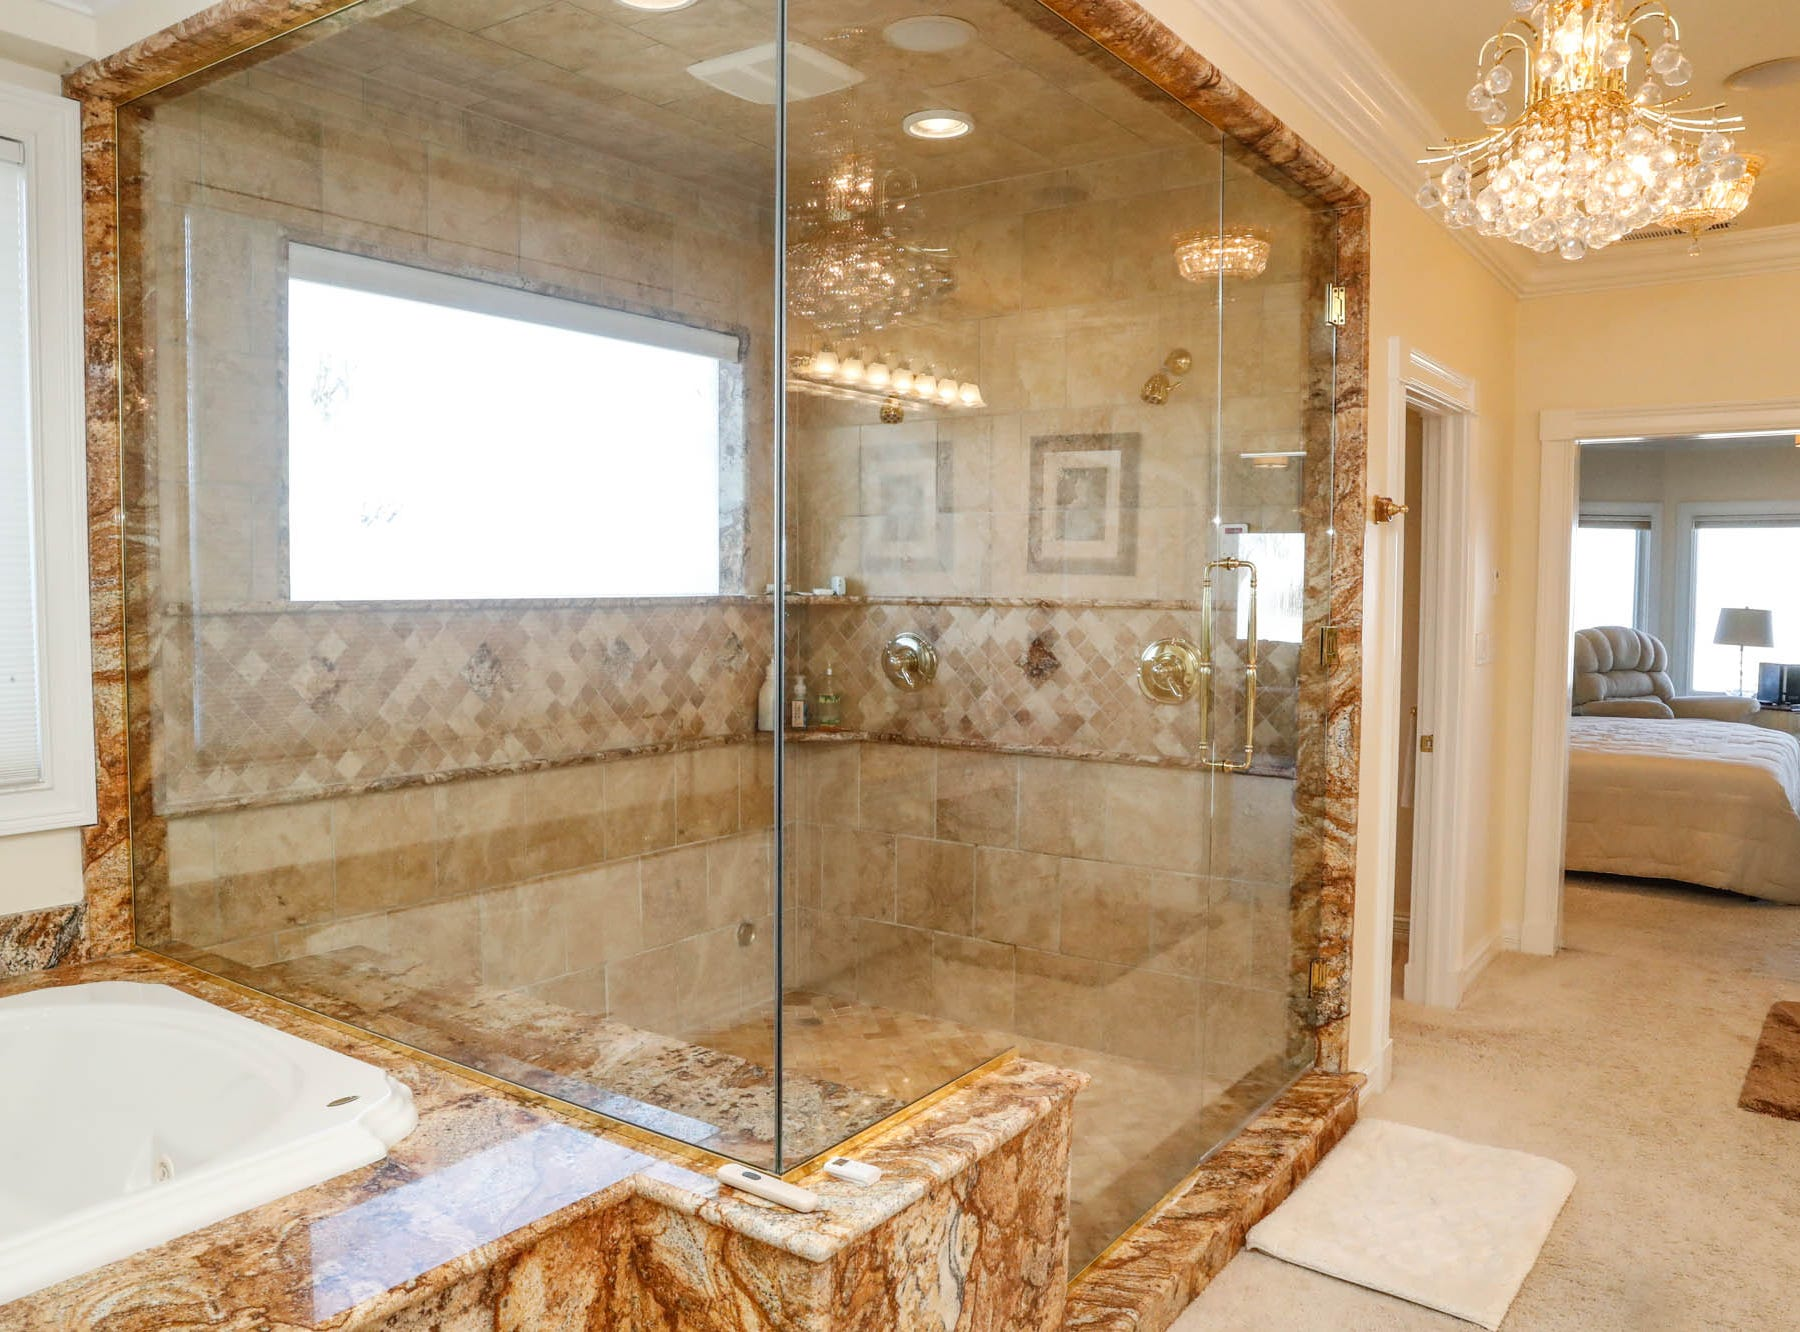 A second-floor master bath, one of two in the home, features the largest walk in shower, at a Greenwood home up for sale at 1216 Stone Ridge Court, Greenwood, Ind. on Wednesday, Jan. 30, 2019. The home features 8,234 square feet, four bedrooms, two master suites, a 10 car garage, and an exercise room.